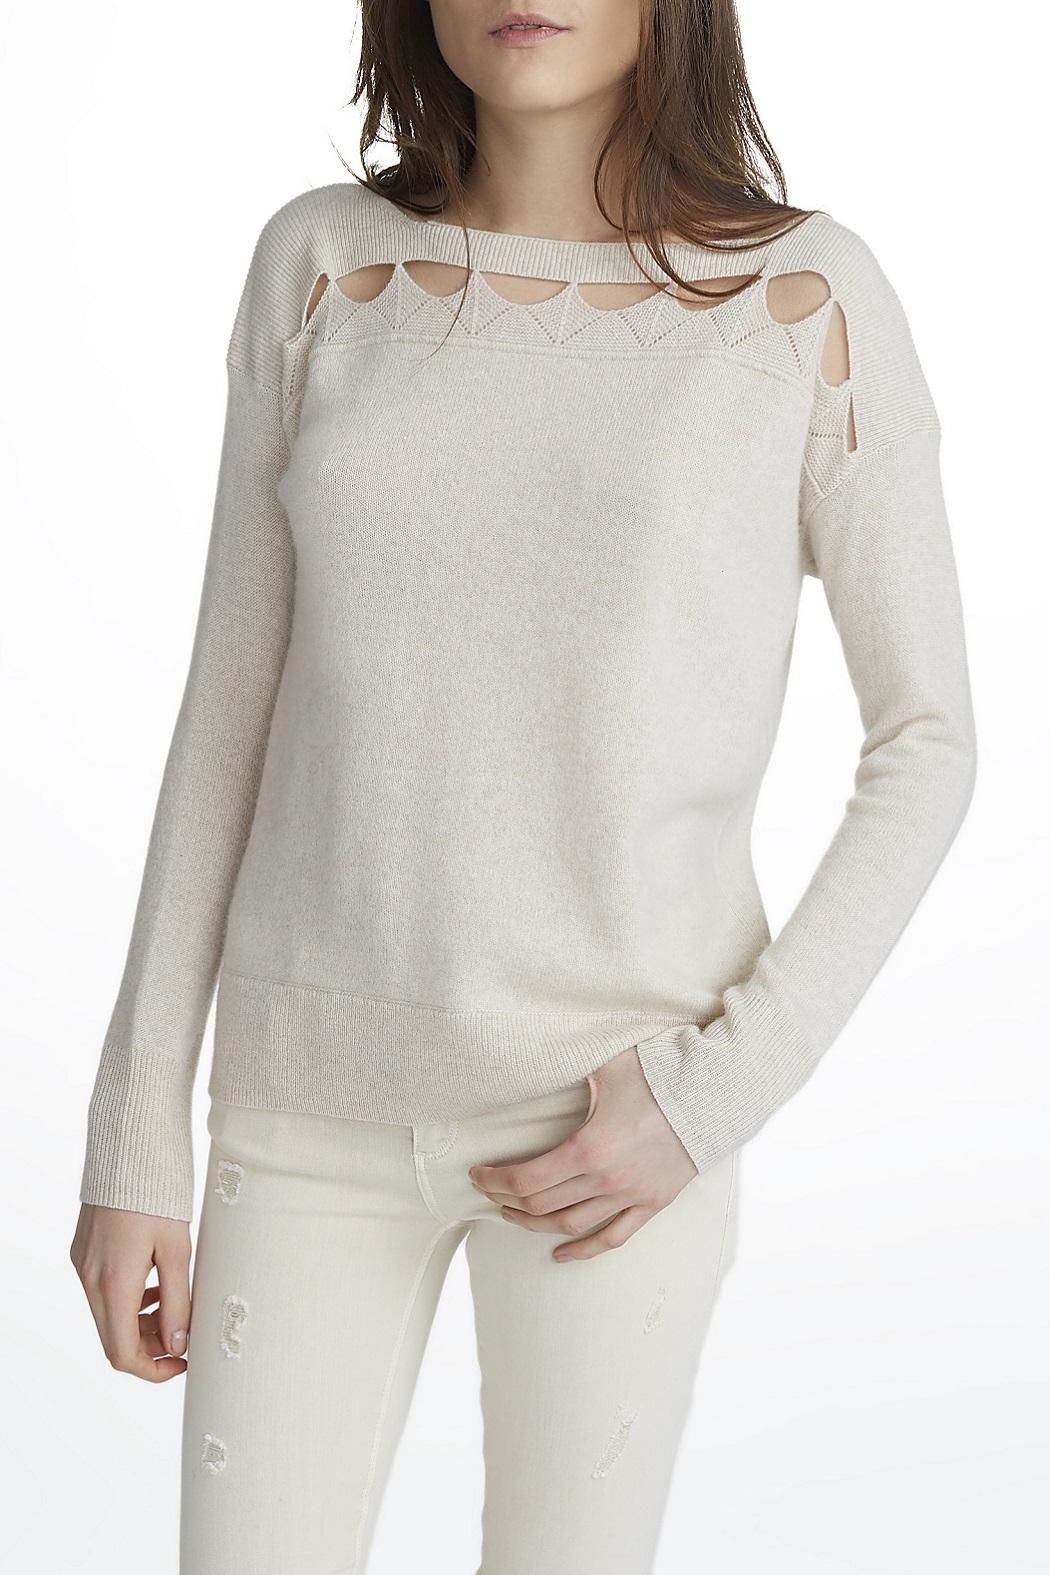 White + Warren Cashmere Cut Out Top - Main Image